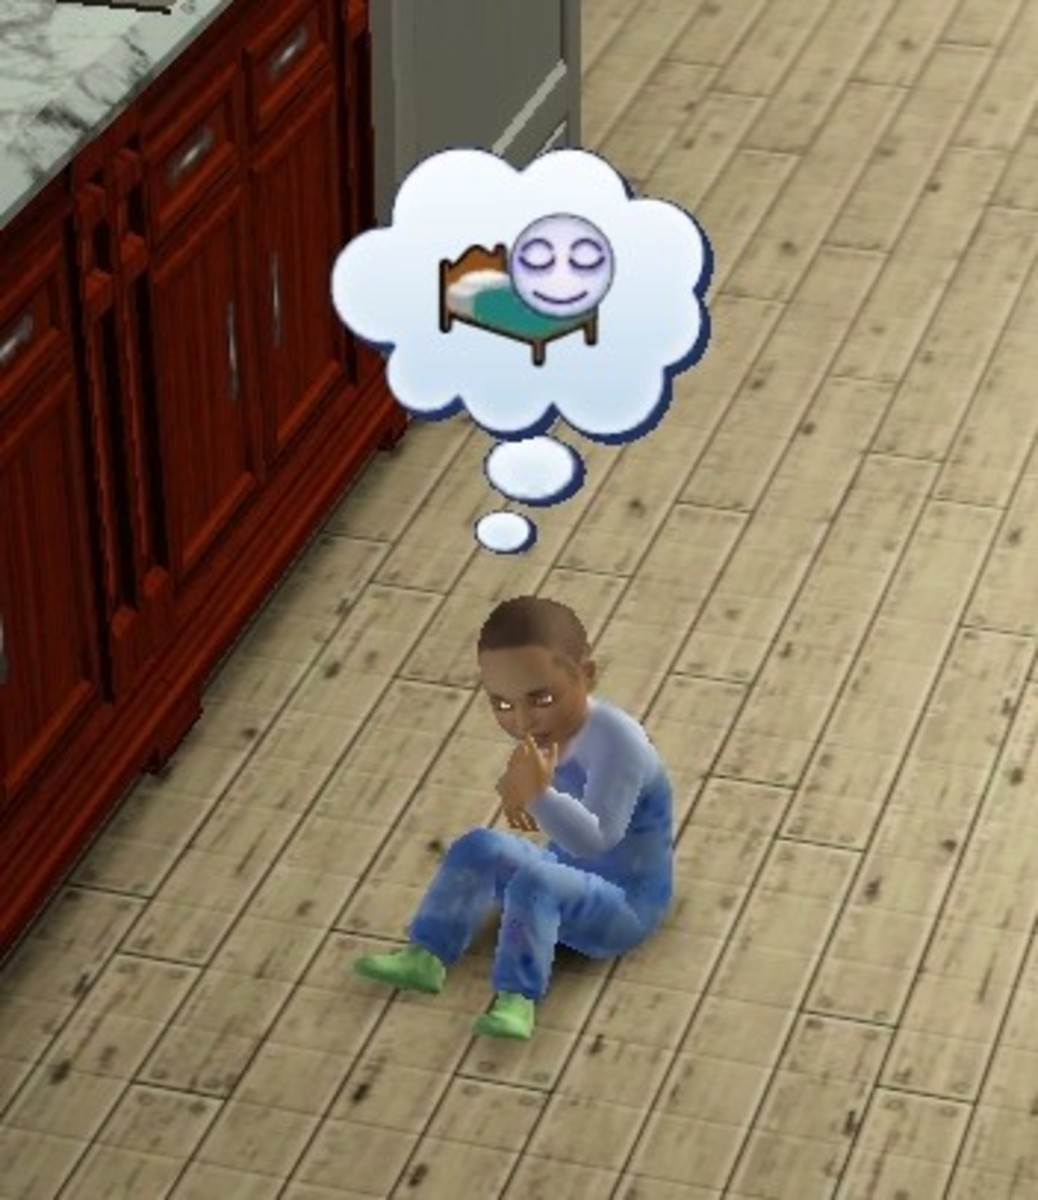 Vampire Sim Toddler (Note the Glowing Eyes)